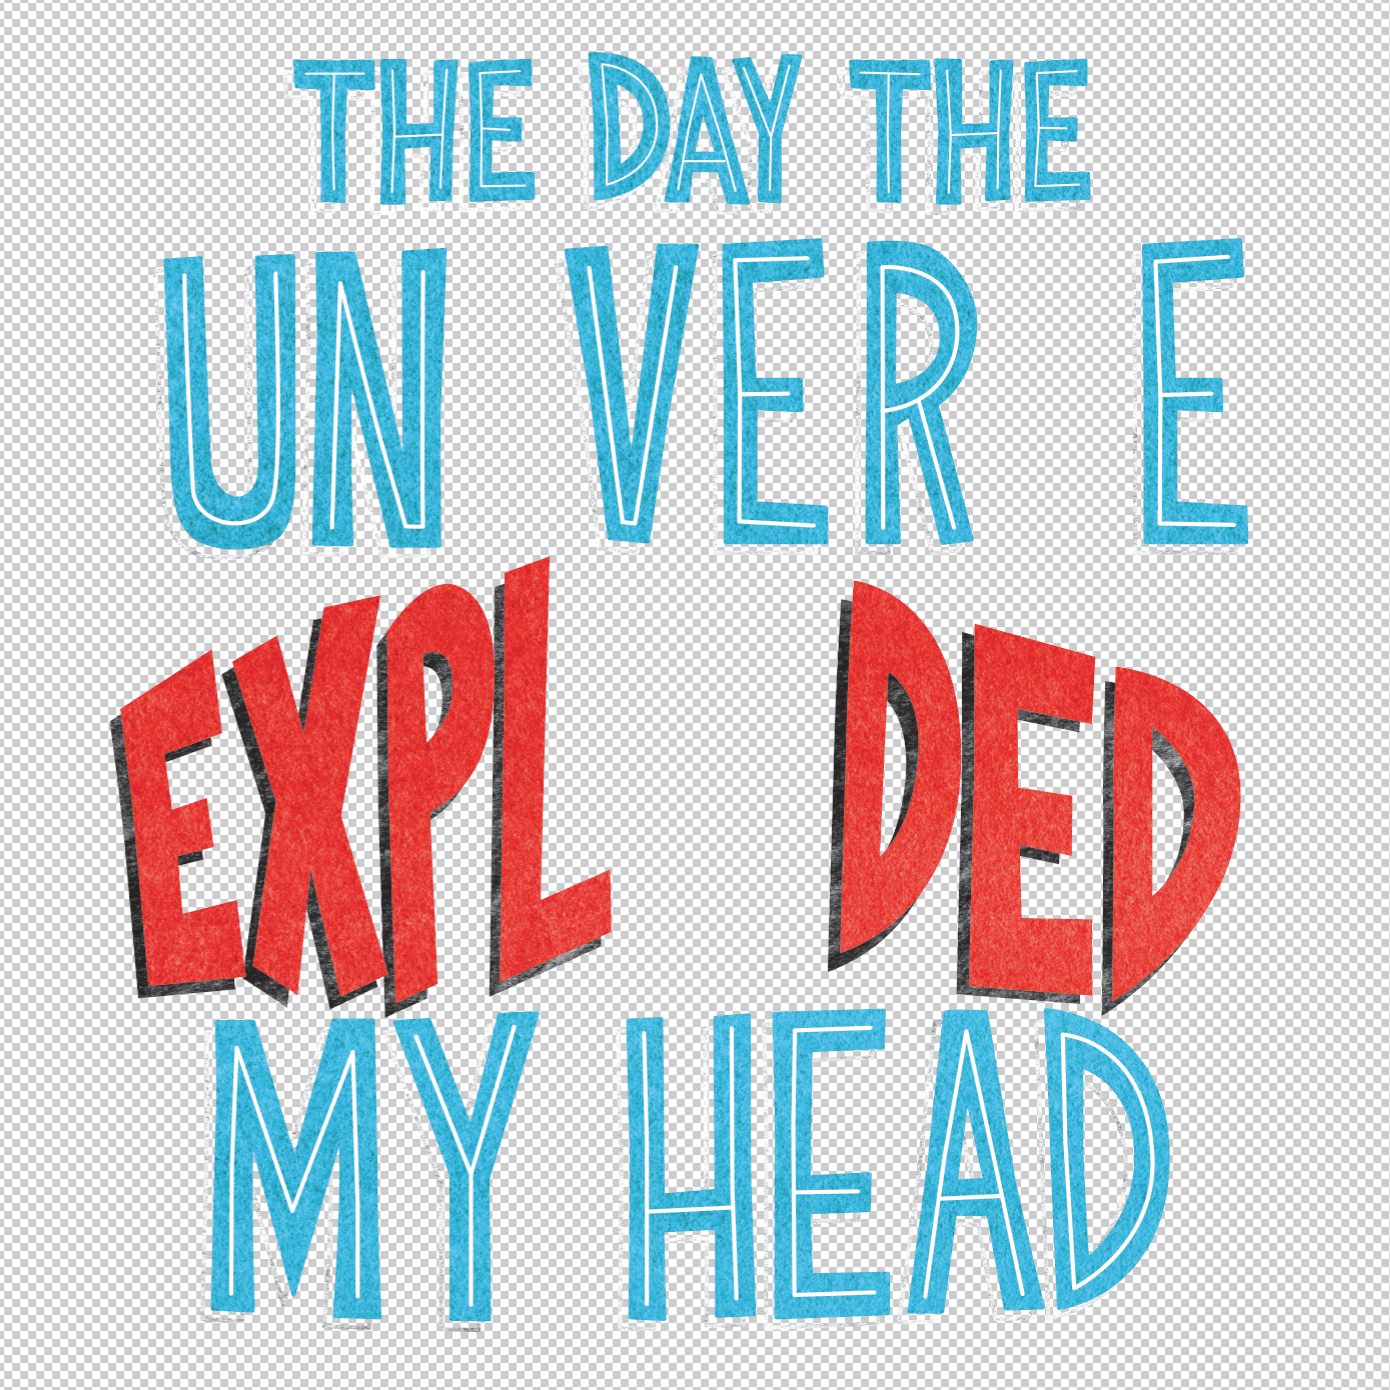 Once approved, I redrew the lettering in Adobe Illustrator, and started playing around with colors.